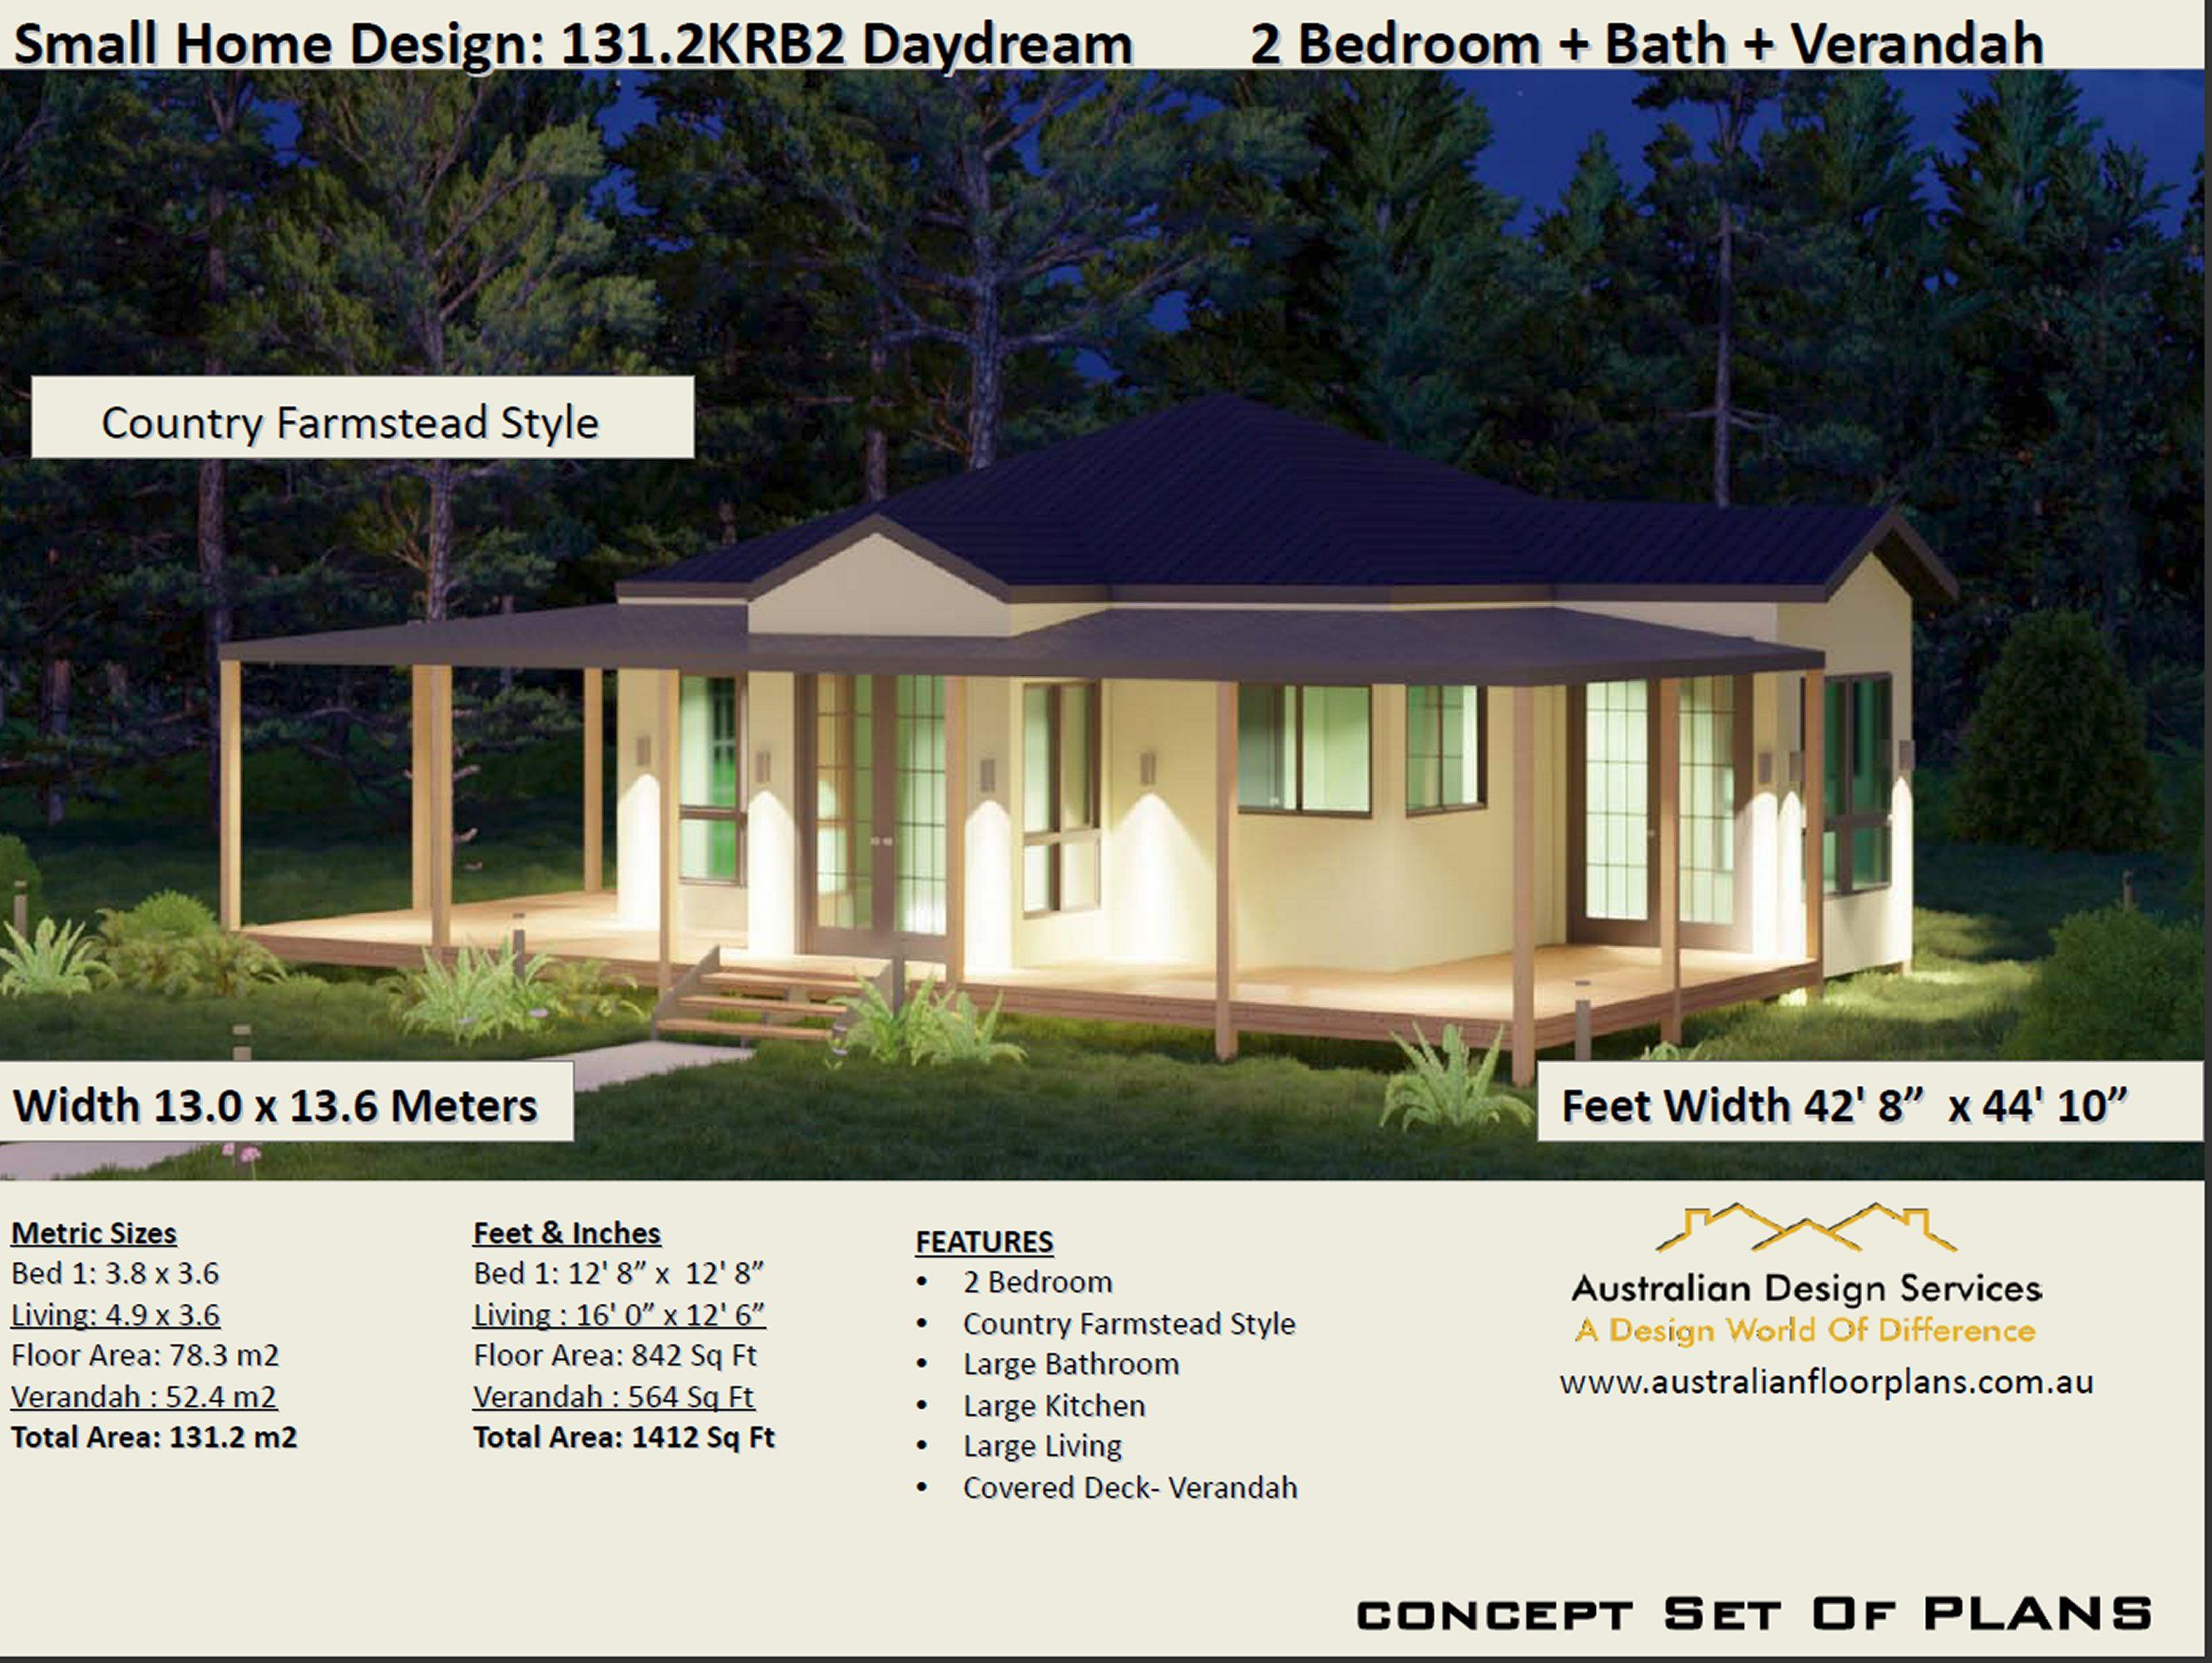 2 Bedroom Small Country Homestead House Plan 131 2krb2 In 2020 Cottage Style House Plans House Plans Small Country Homes